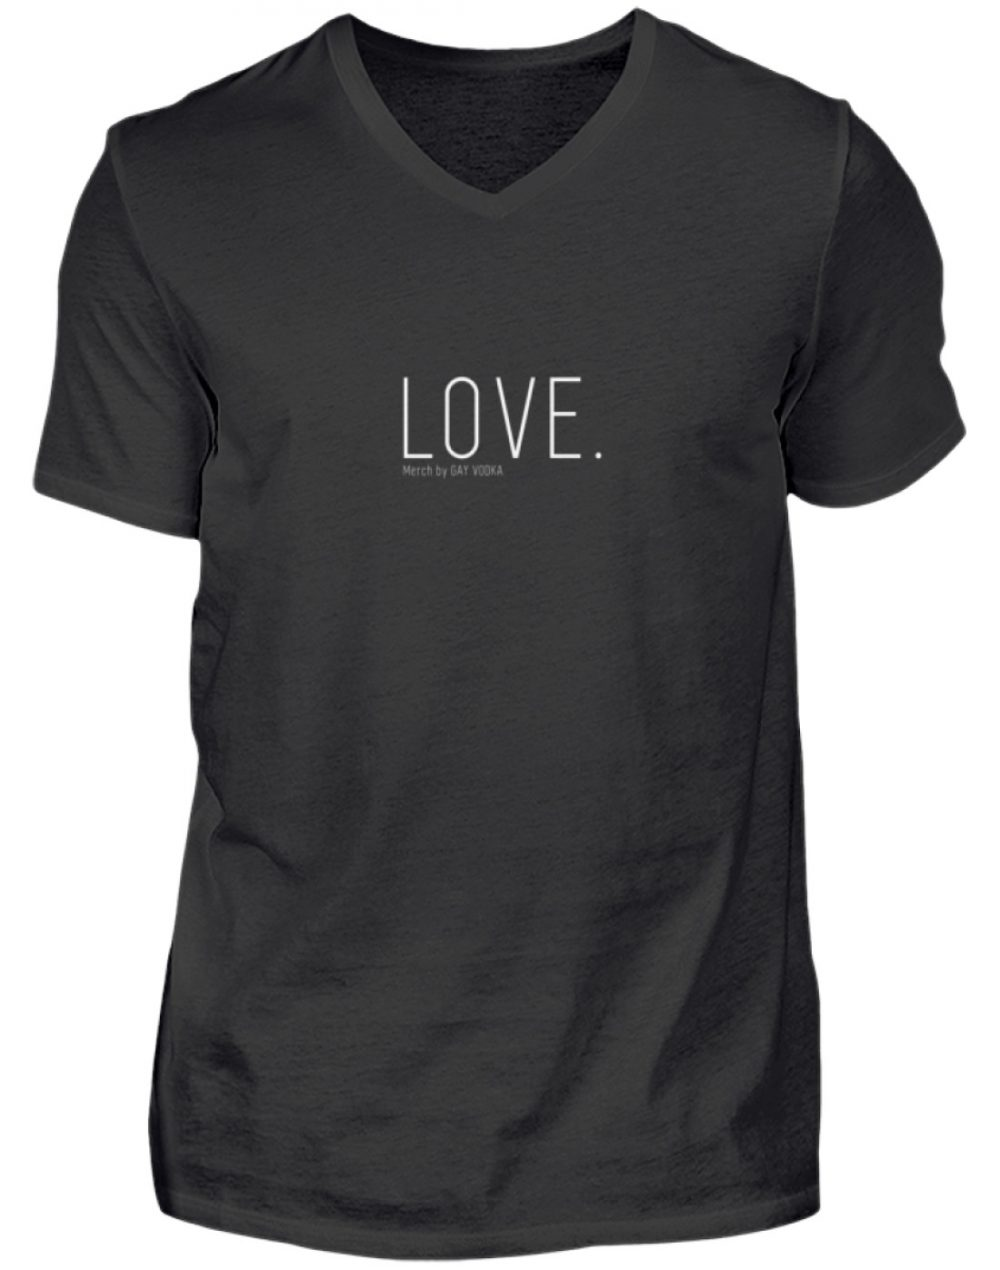 LOVE. - Herren V-Neck Shirt-16